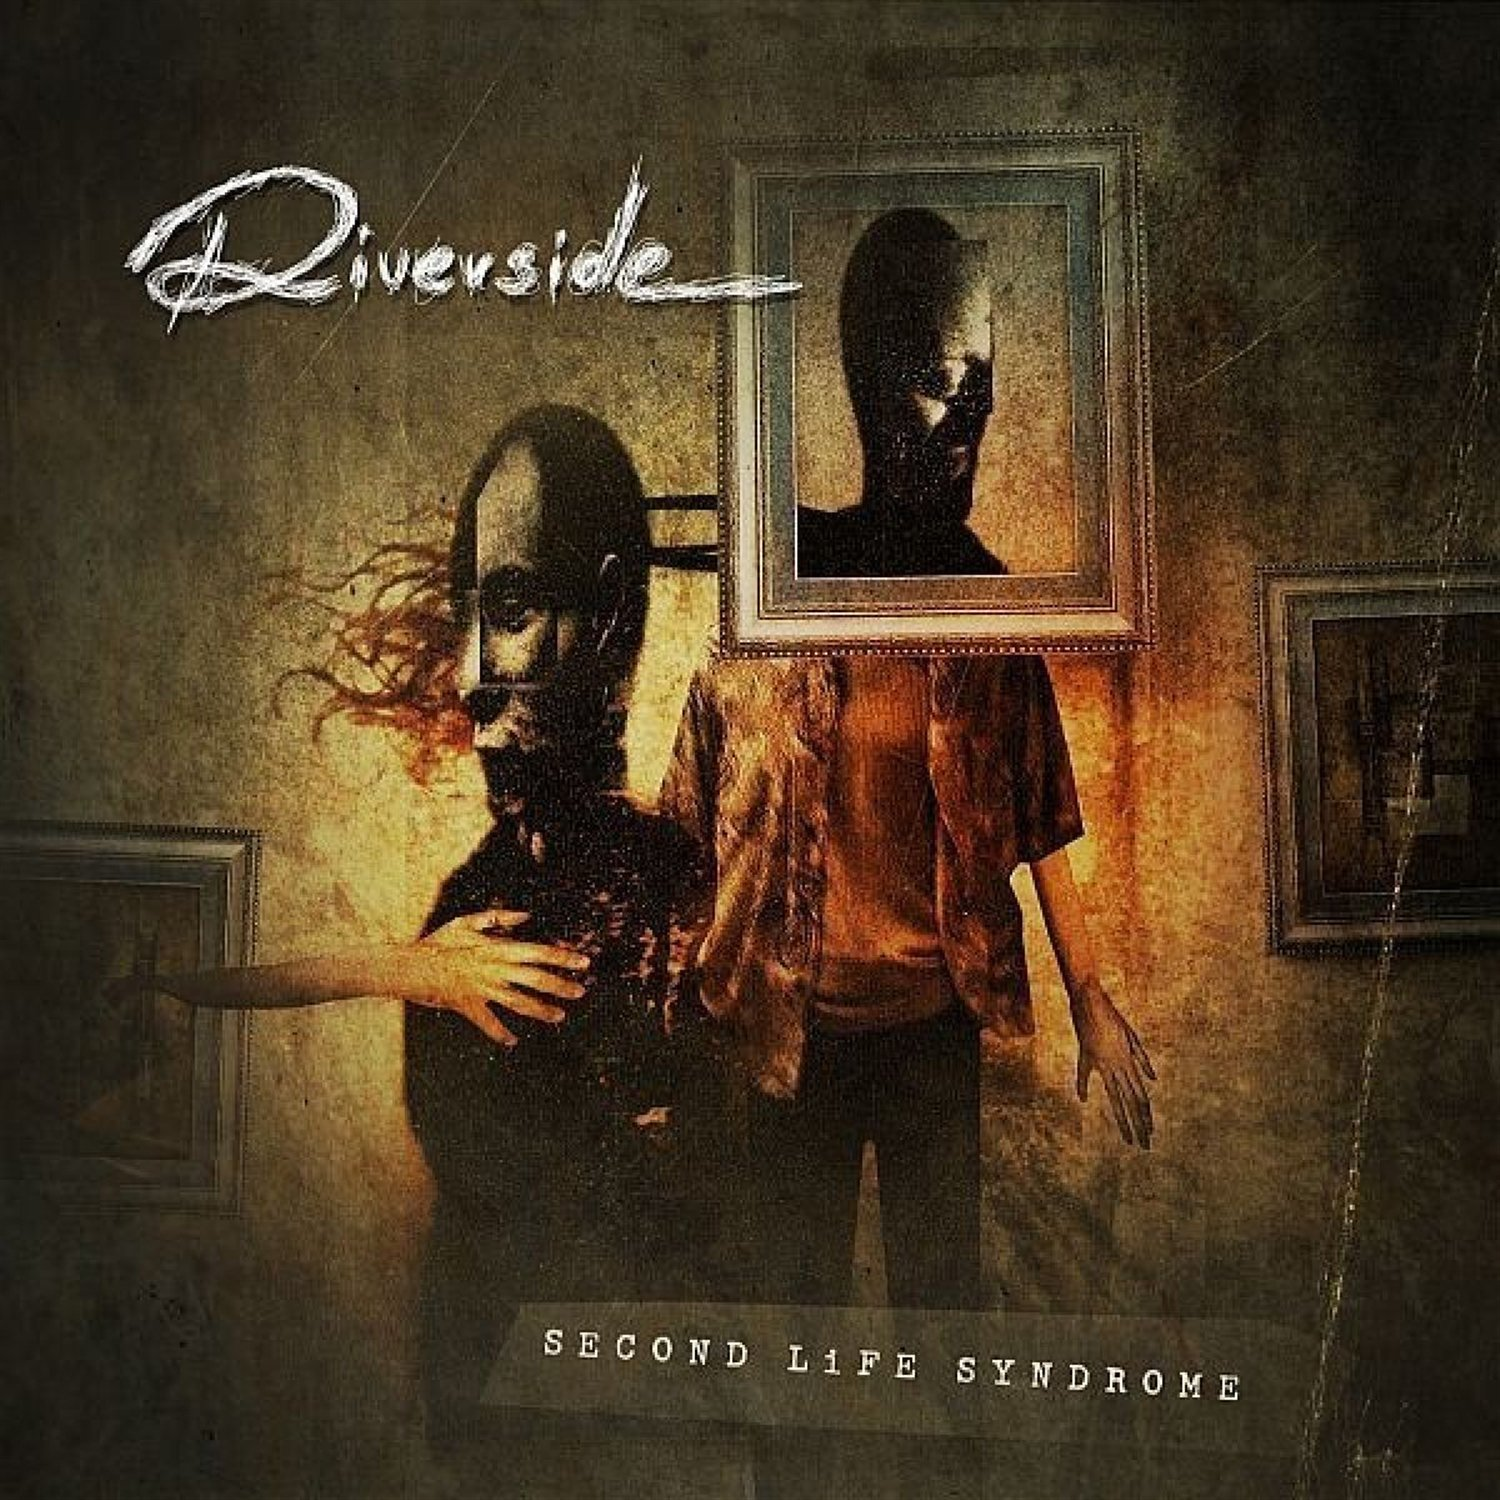 Second Life Syndrome / Riverside